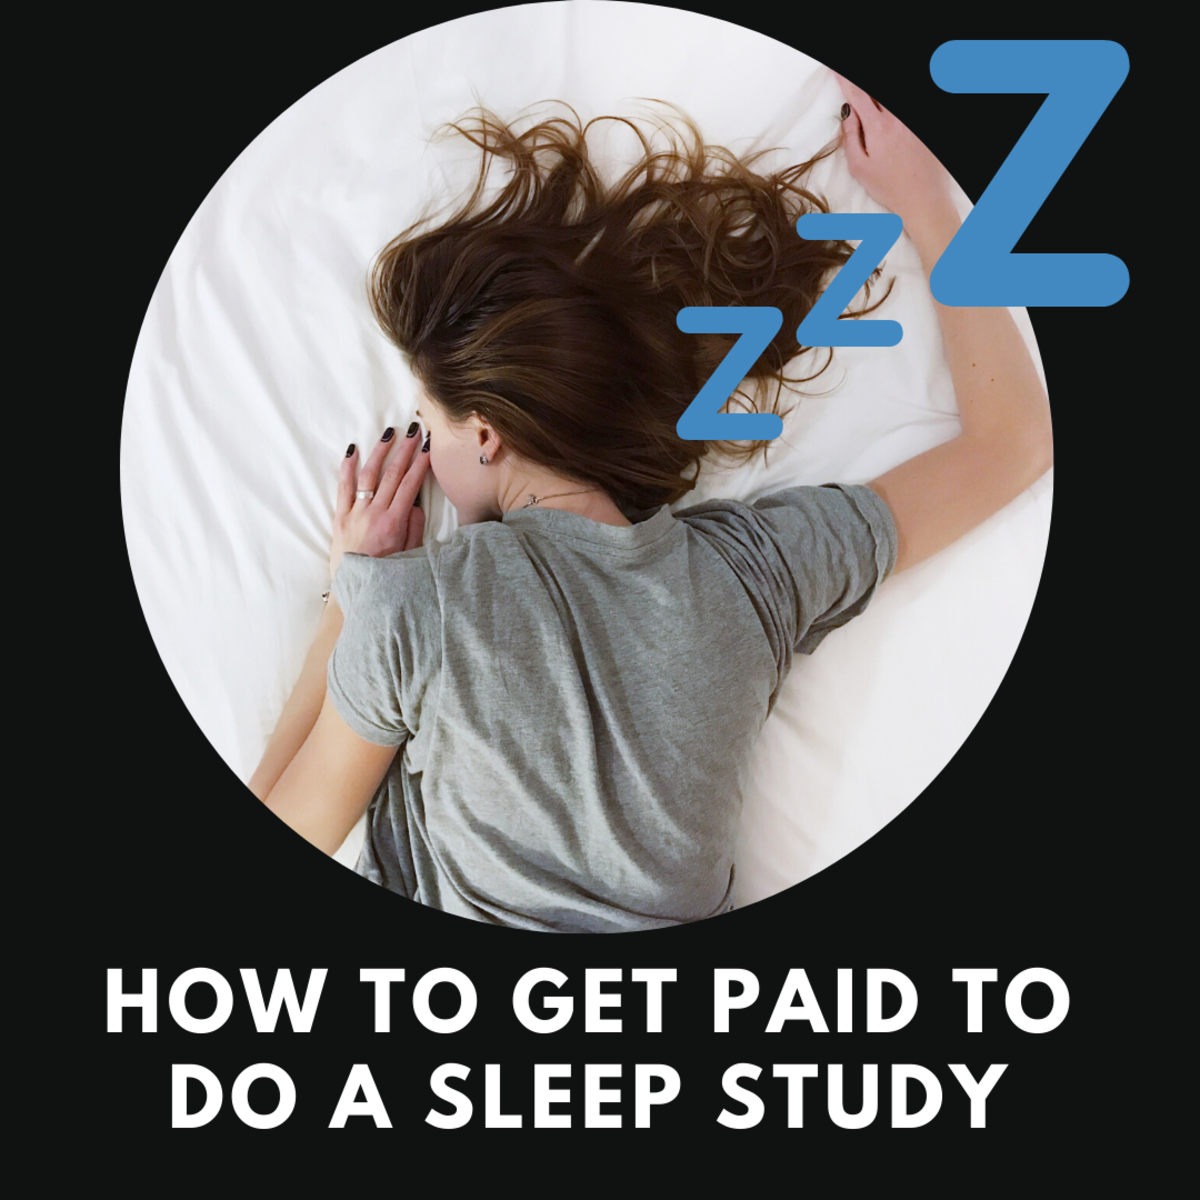 How to Get Paid to Do a Sleep Study